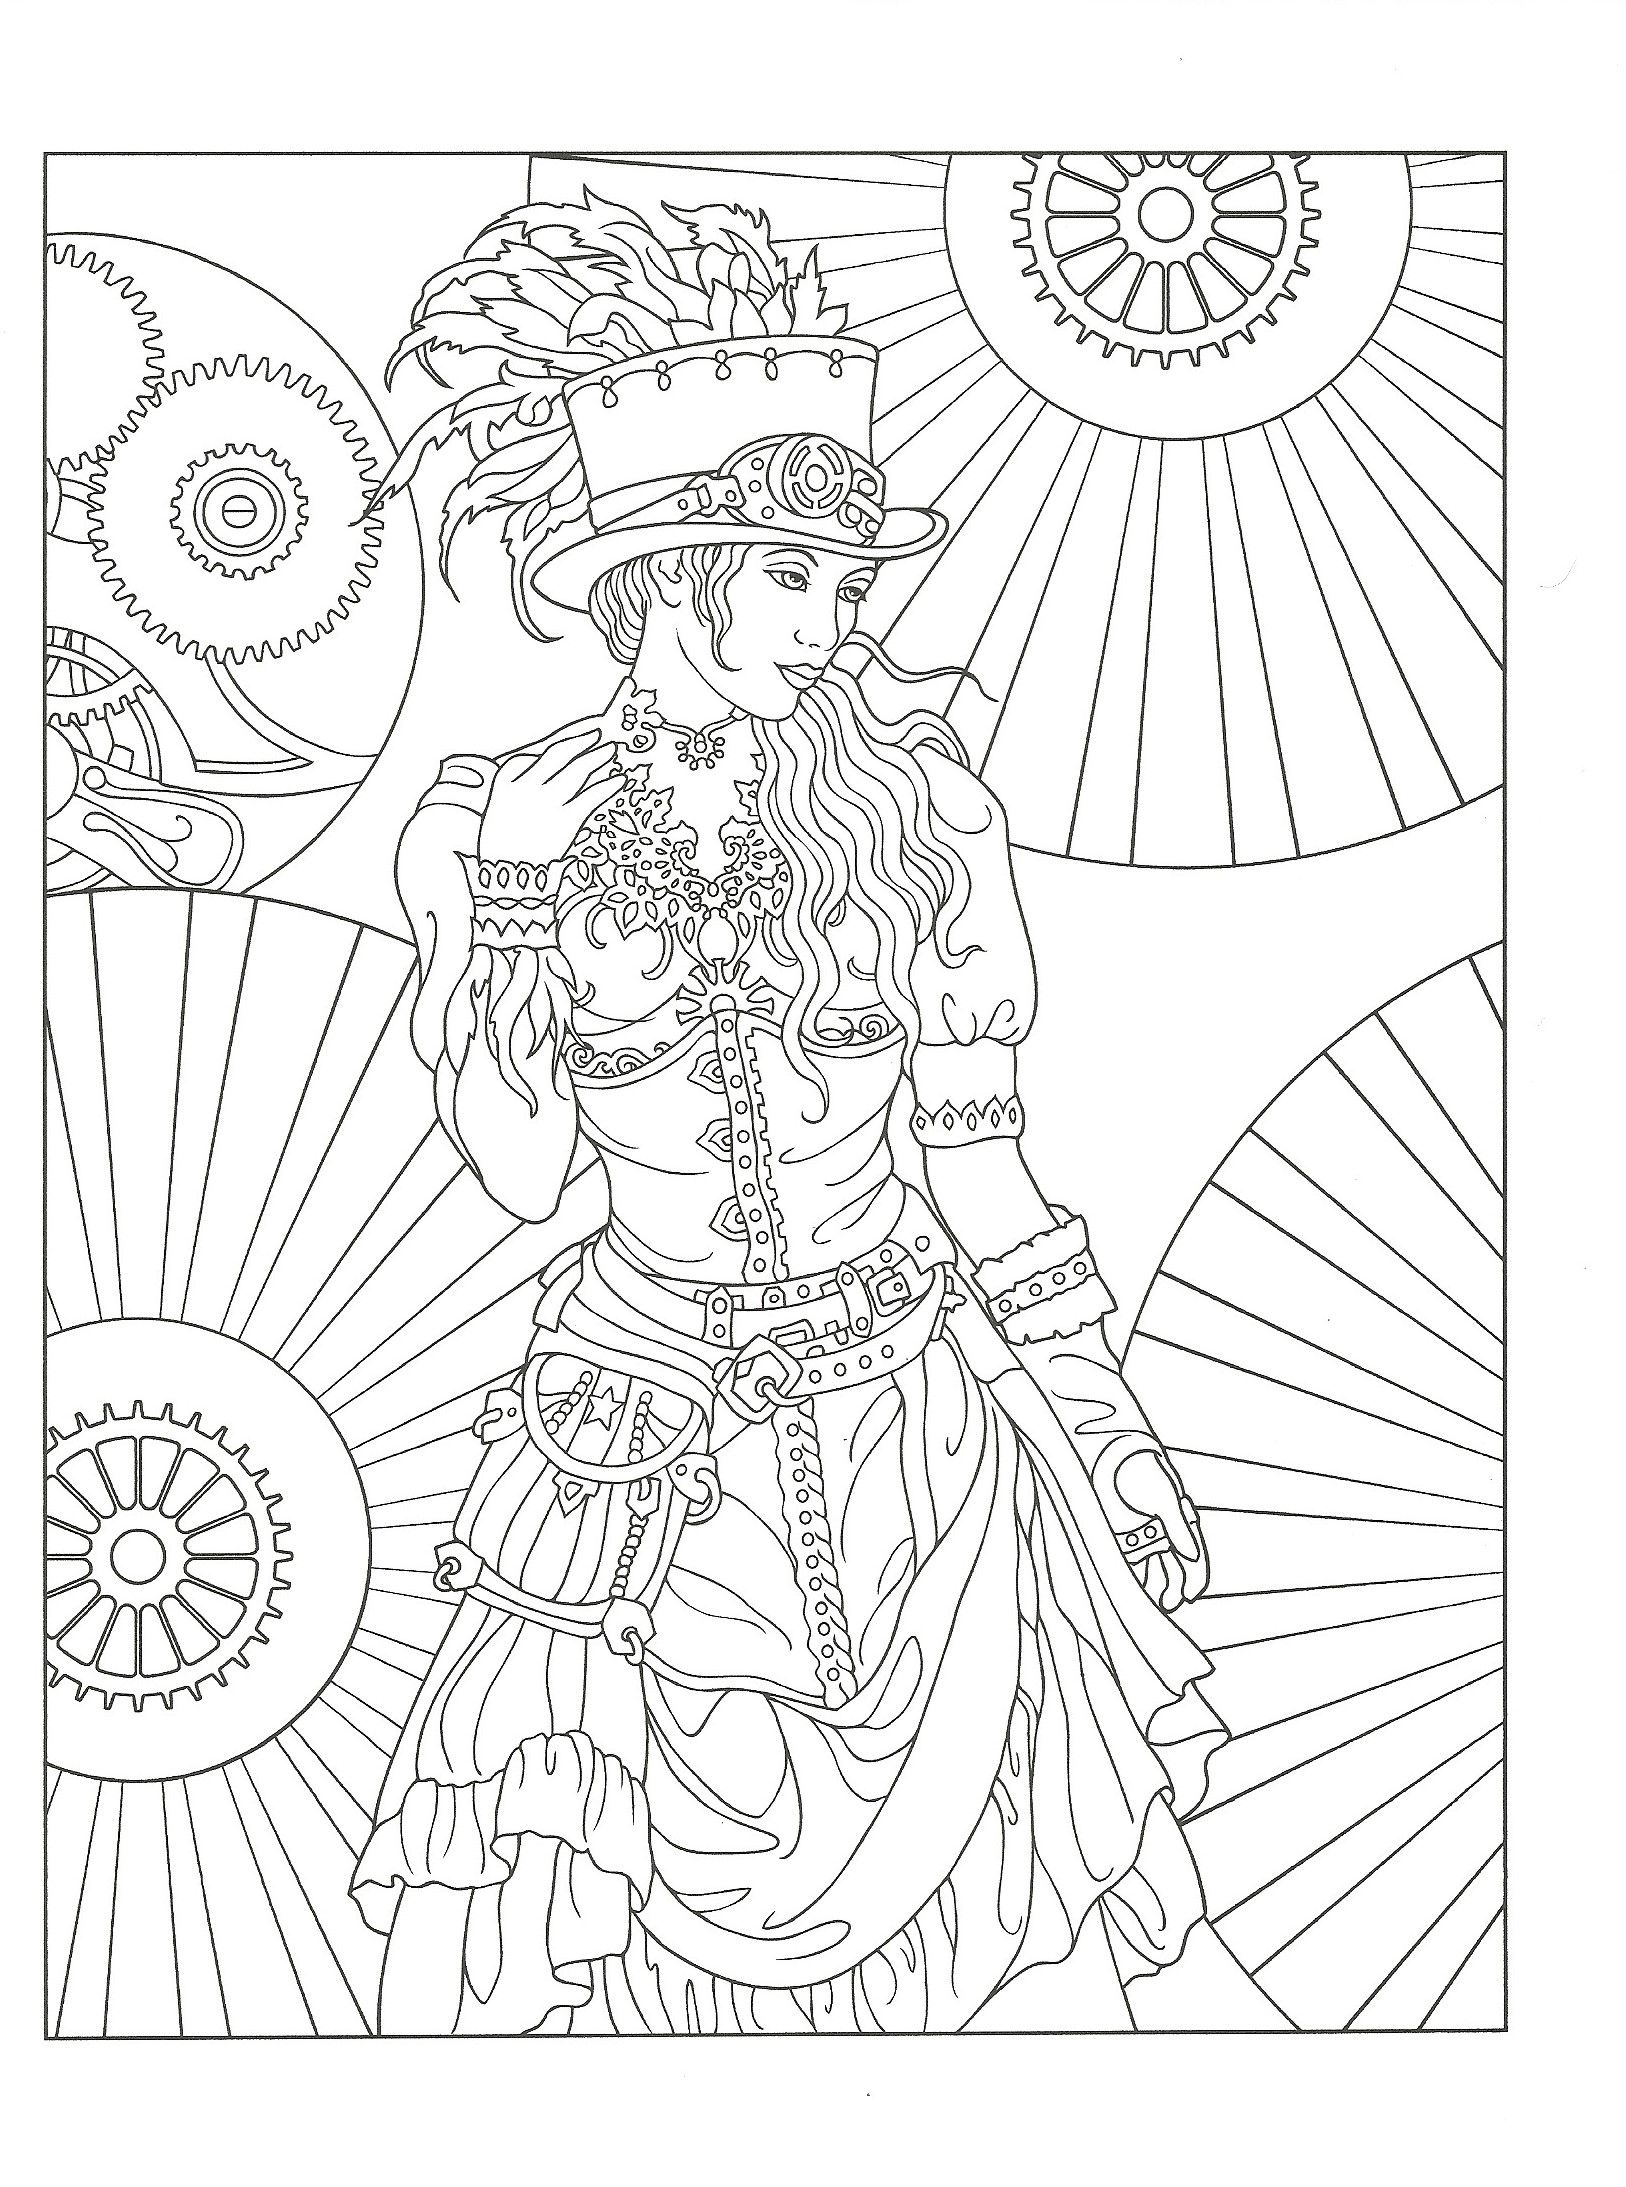 Adult Coloring page from Creative Haven Steampunk Fashions